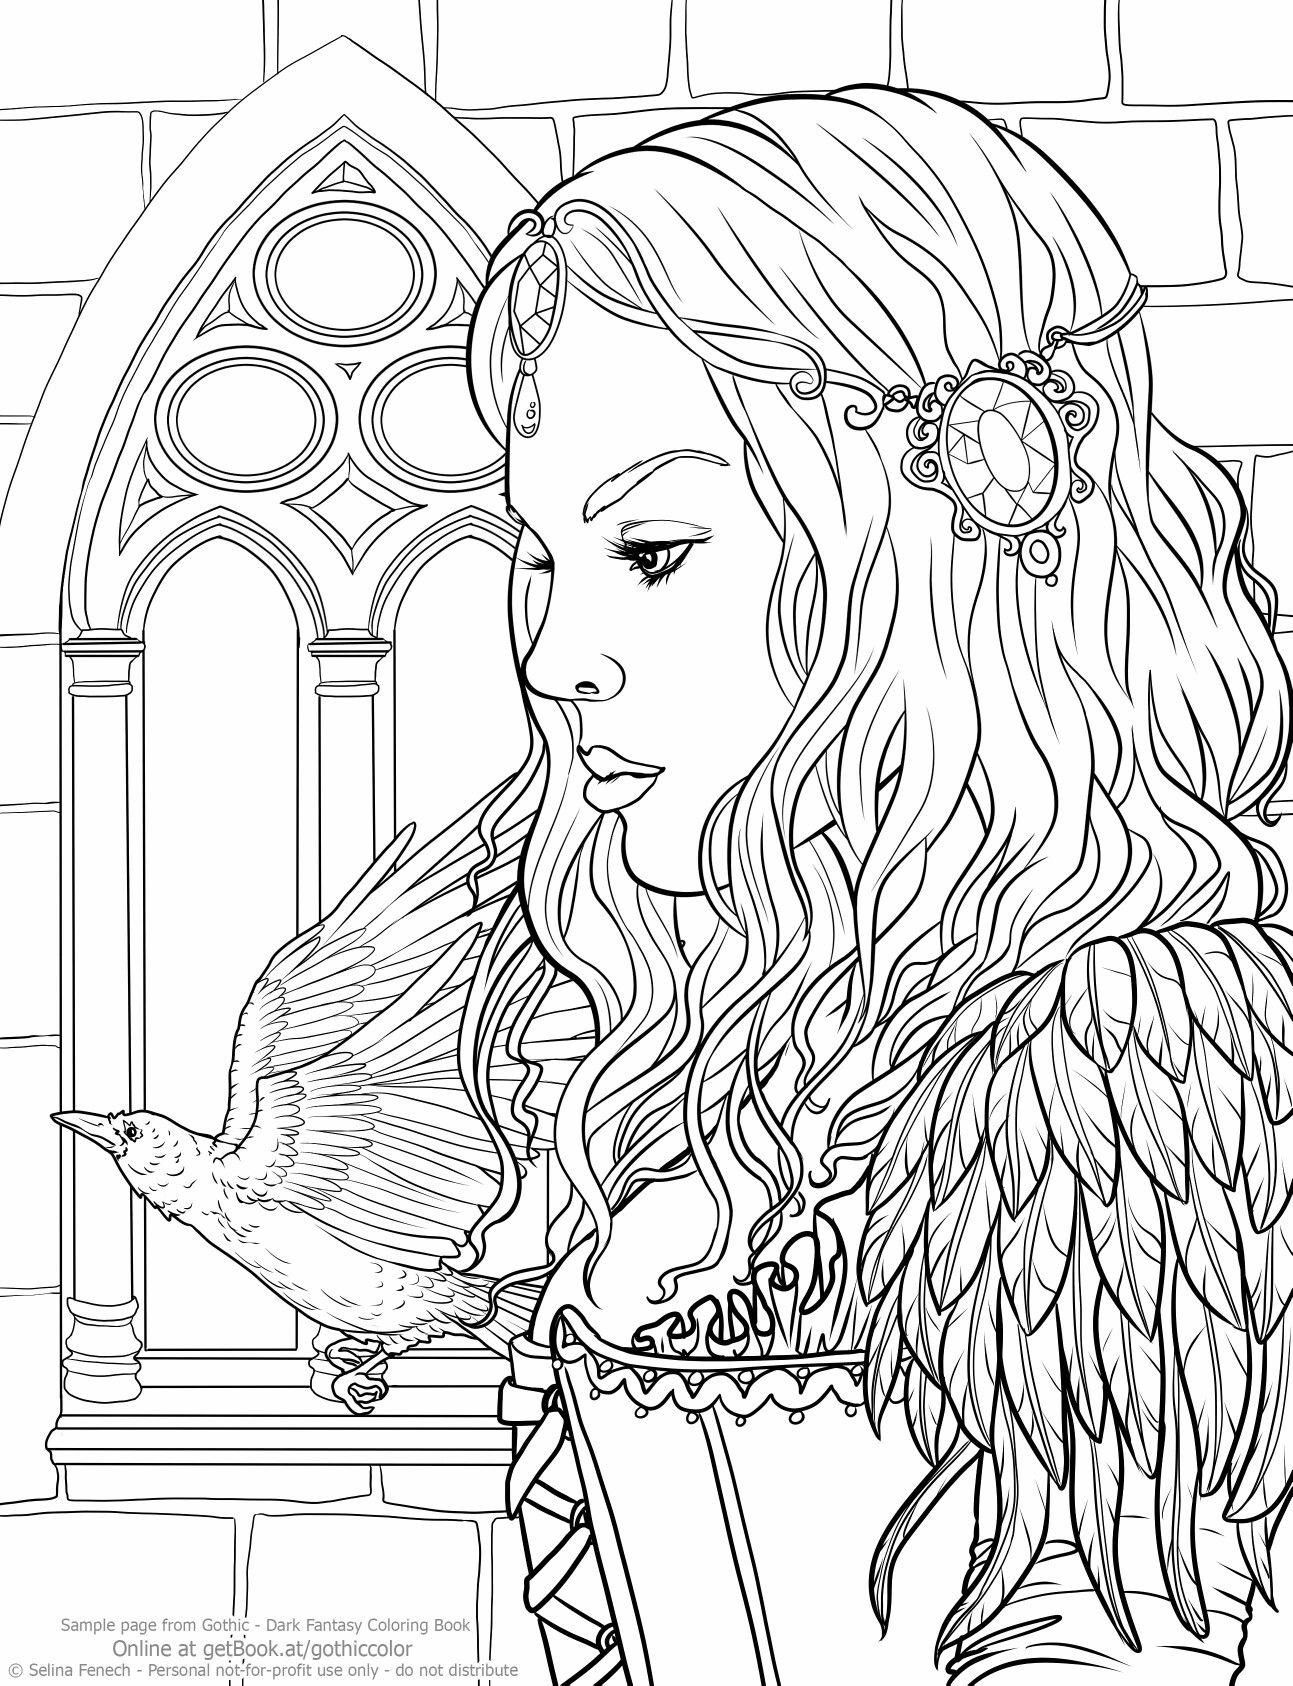 16 Fantasy Coloring Pages In 2021 People Coloring Pages Fairy Coloring Pages Princess Coloring Pages